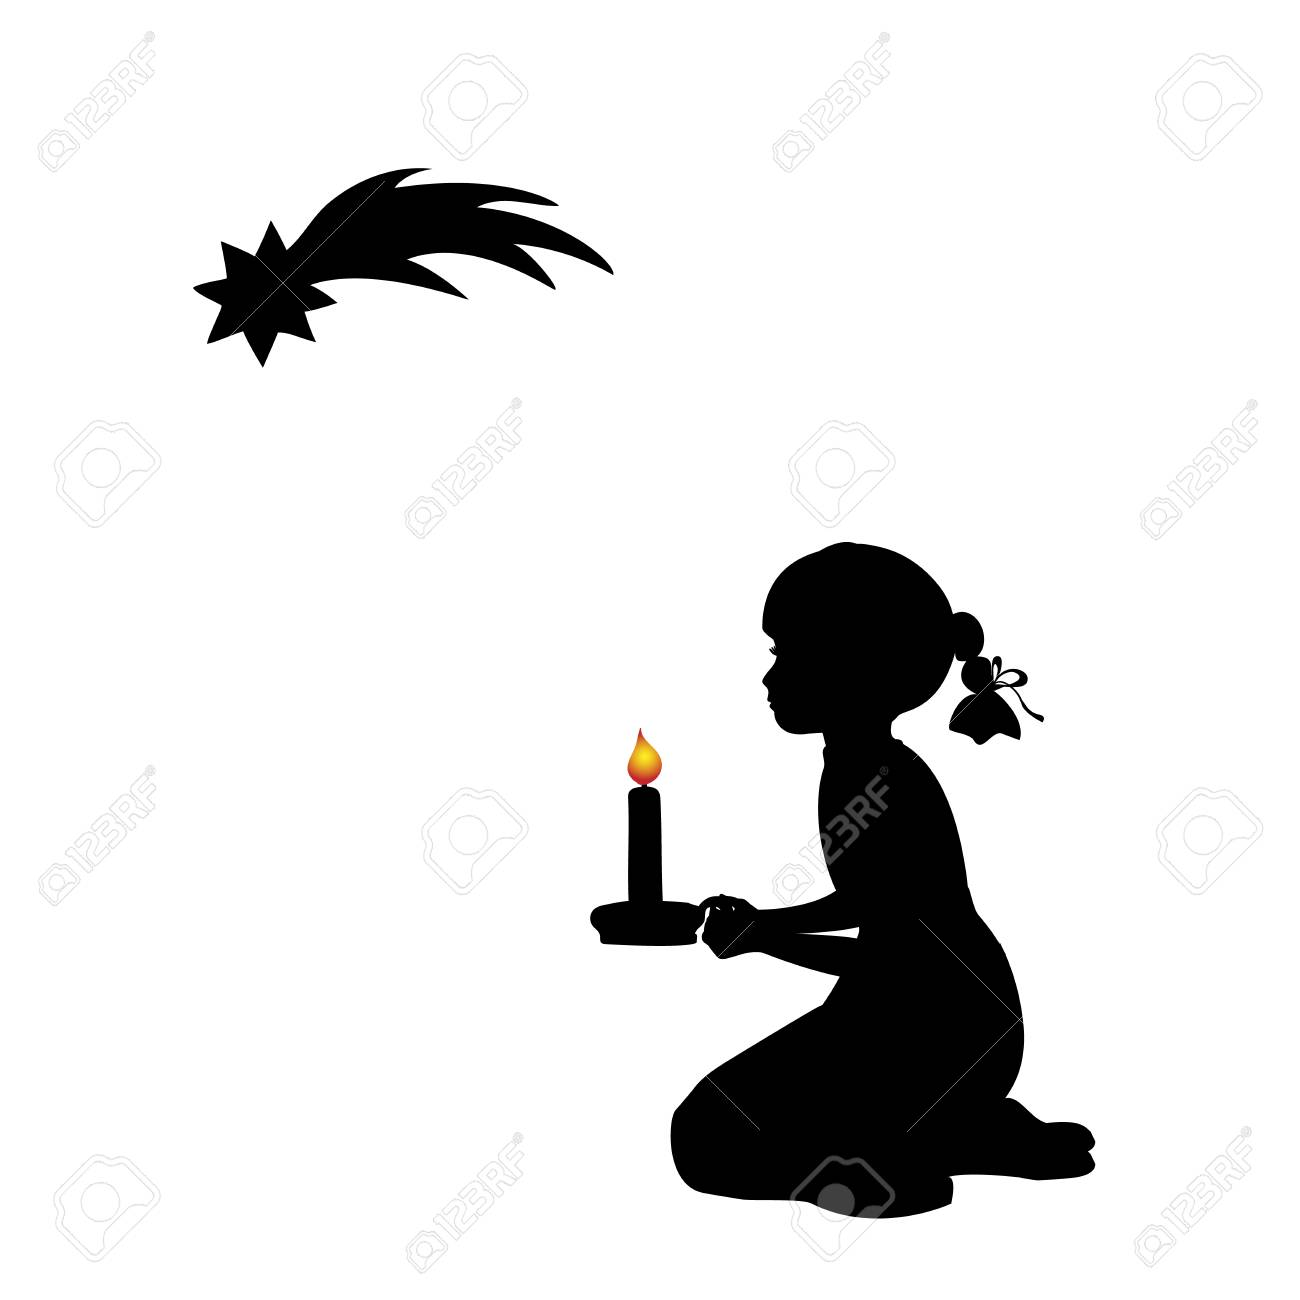 Christmas Star Silhouette.Silhouette Praying Girl With Candle Christmas Star